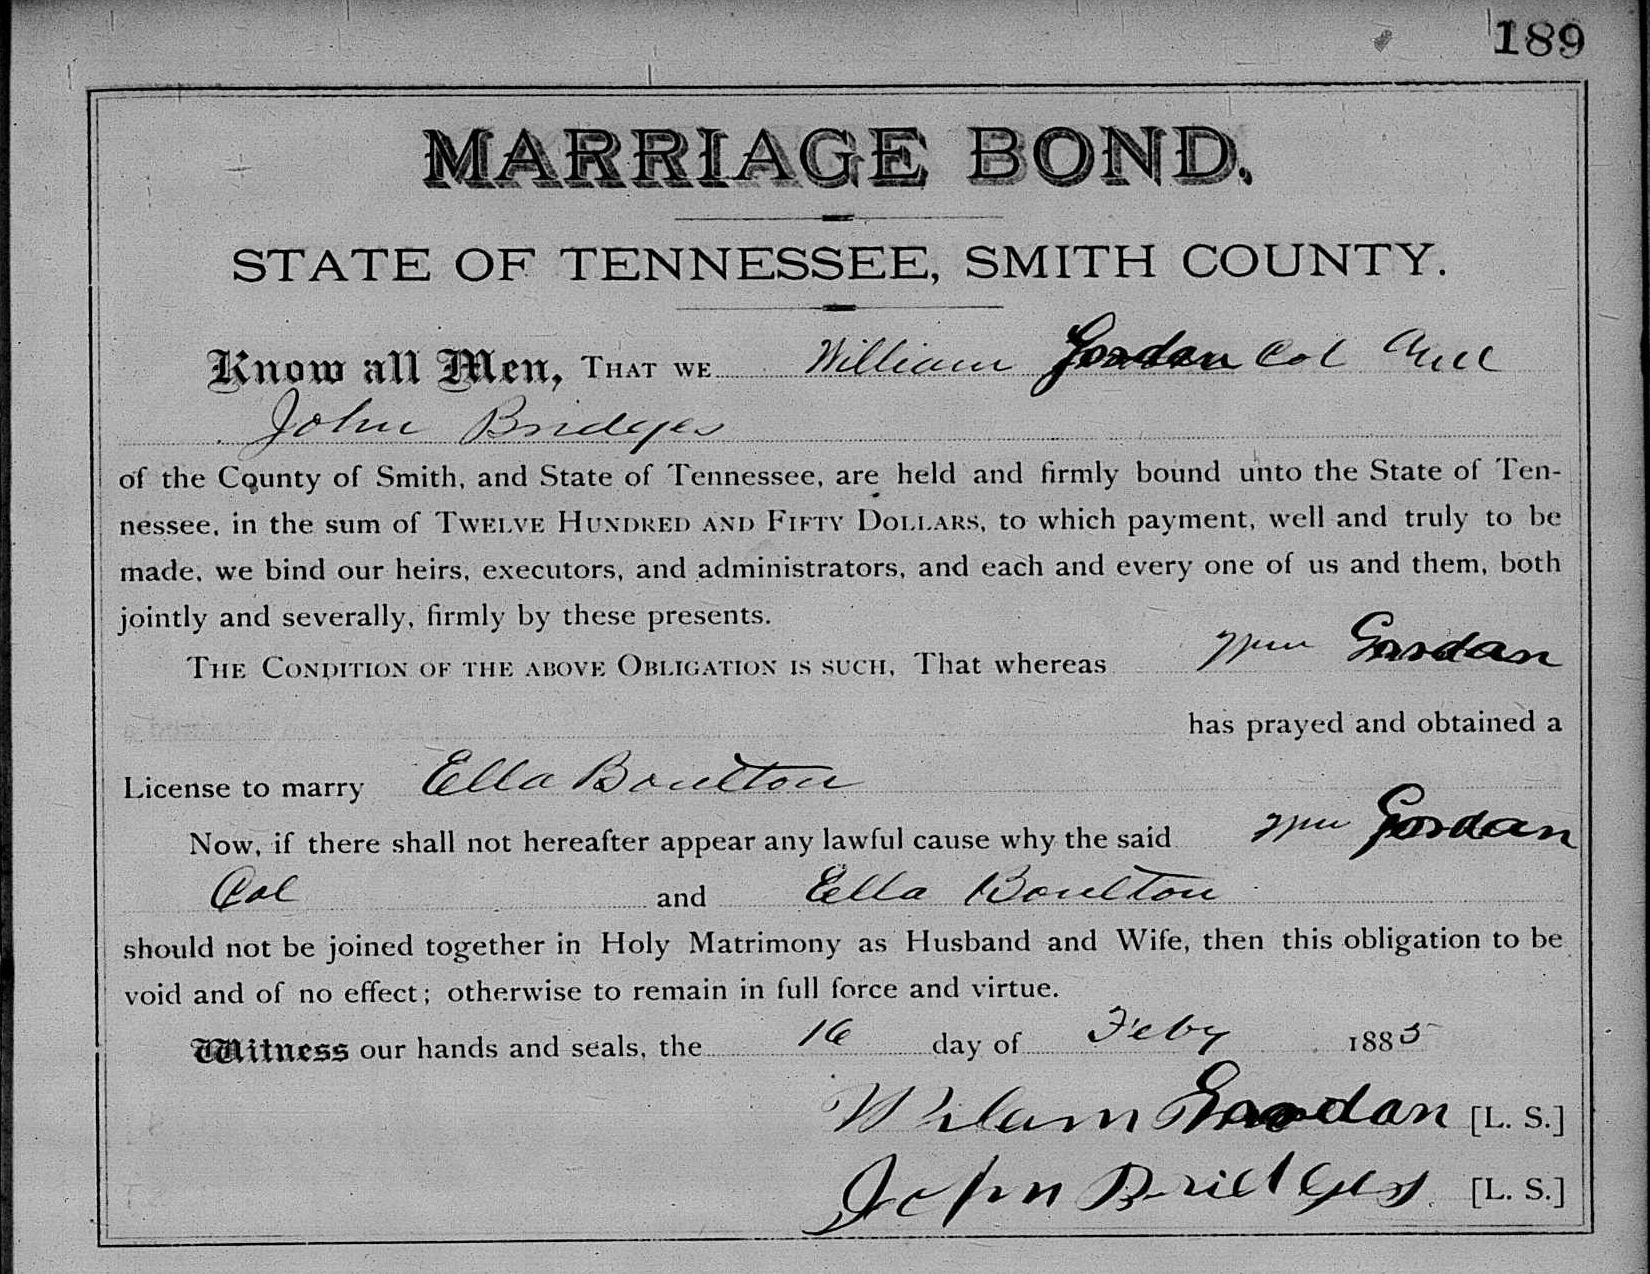 Source: Ancestry.com, Tennessee State Marriages, 1780-2002.